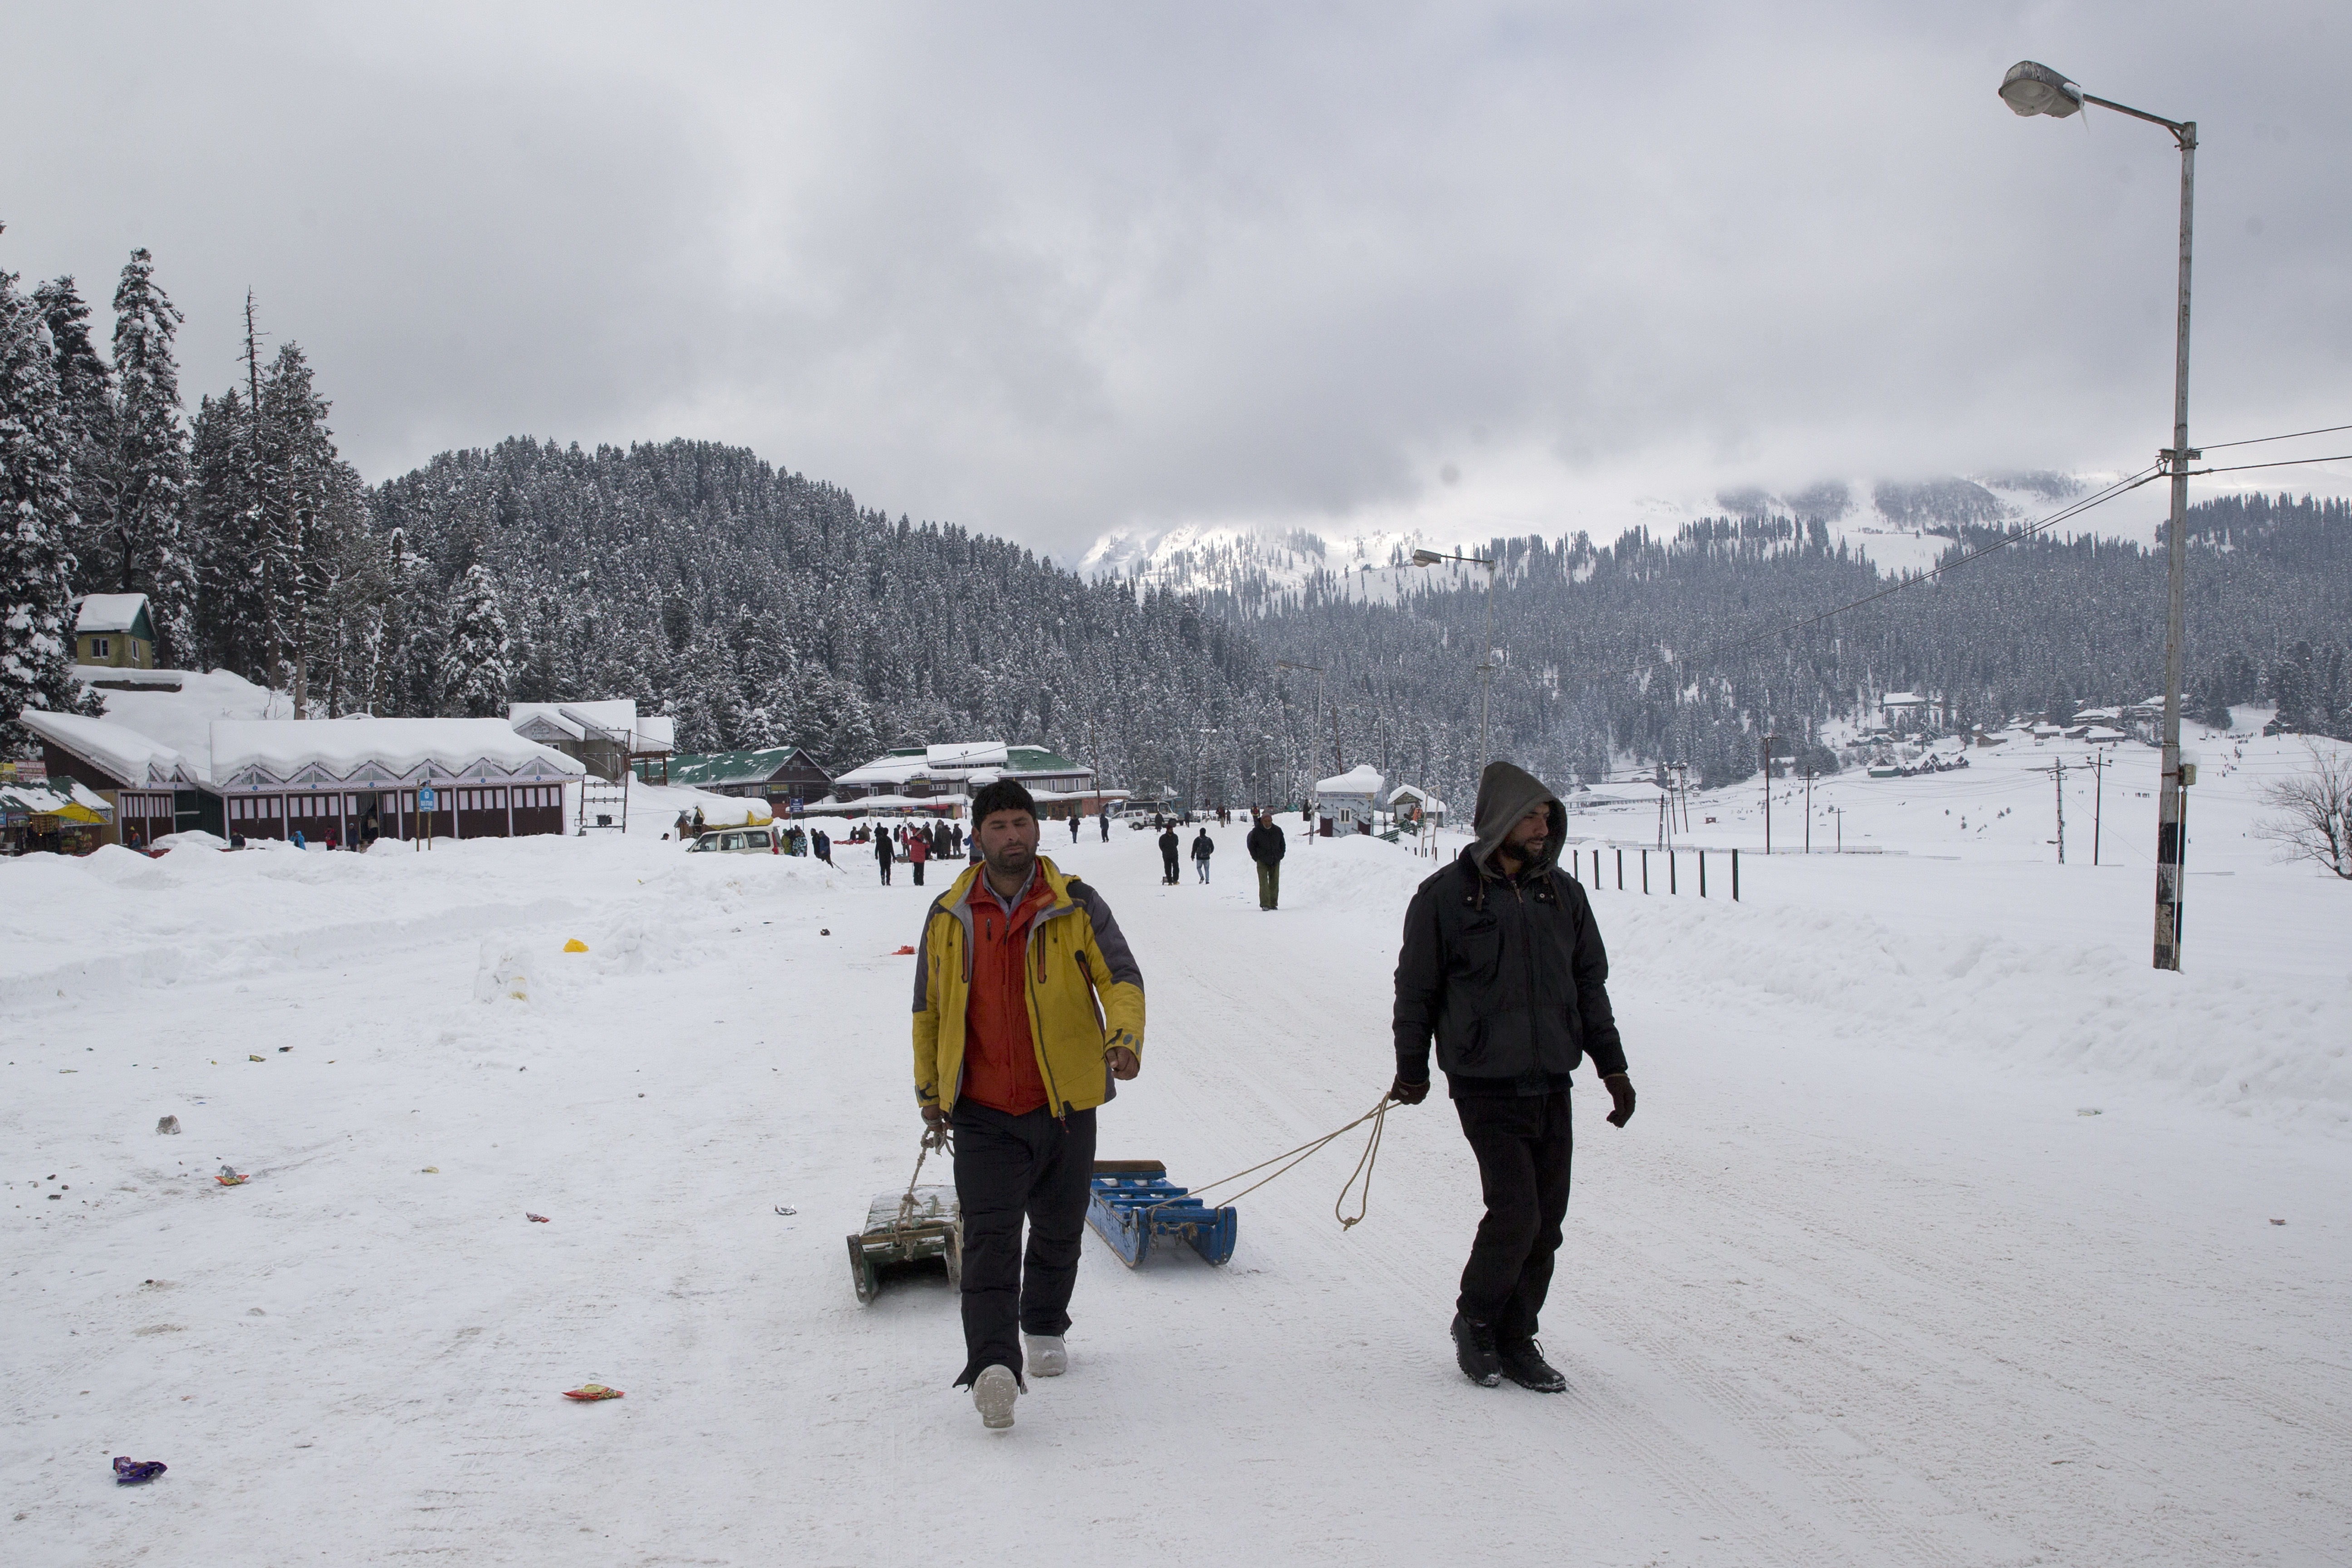 Kashmiri sledge pullers walk on a snow covered road in Gulmarg, 55 kilometers (34 miles) north of Srinagar, Indian controlled Kashmir - AP